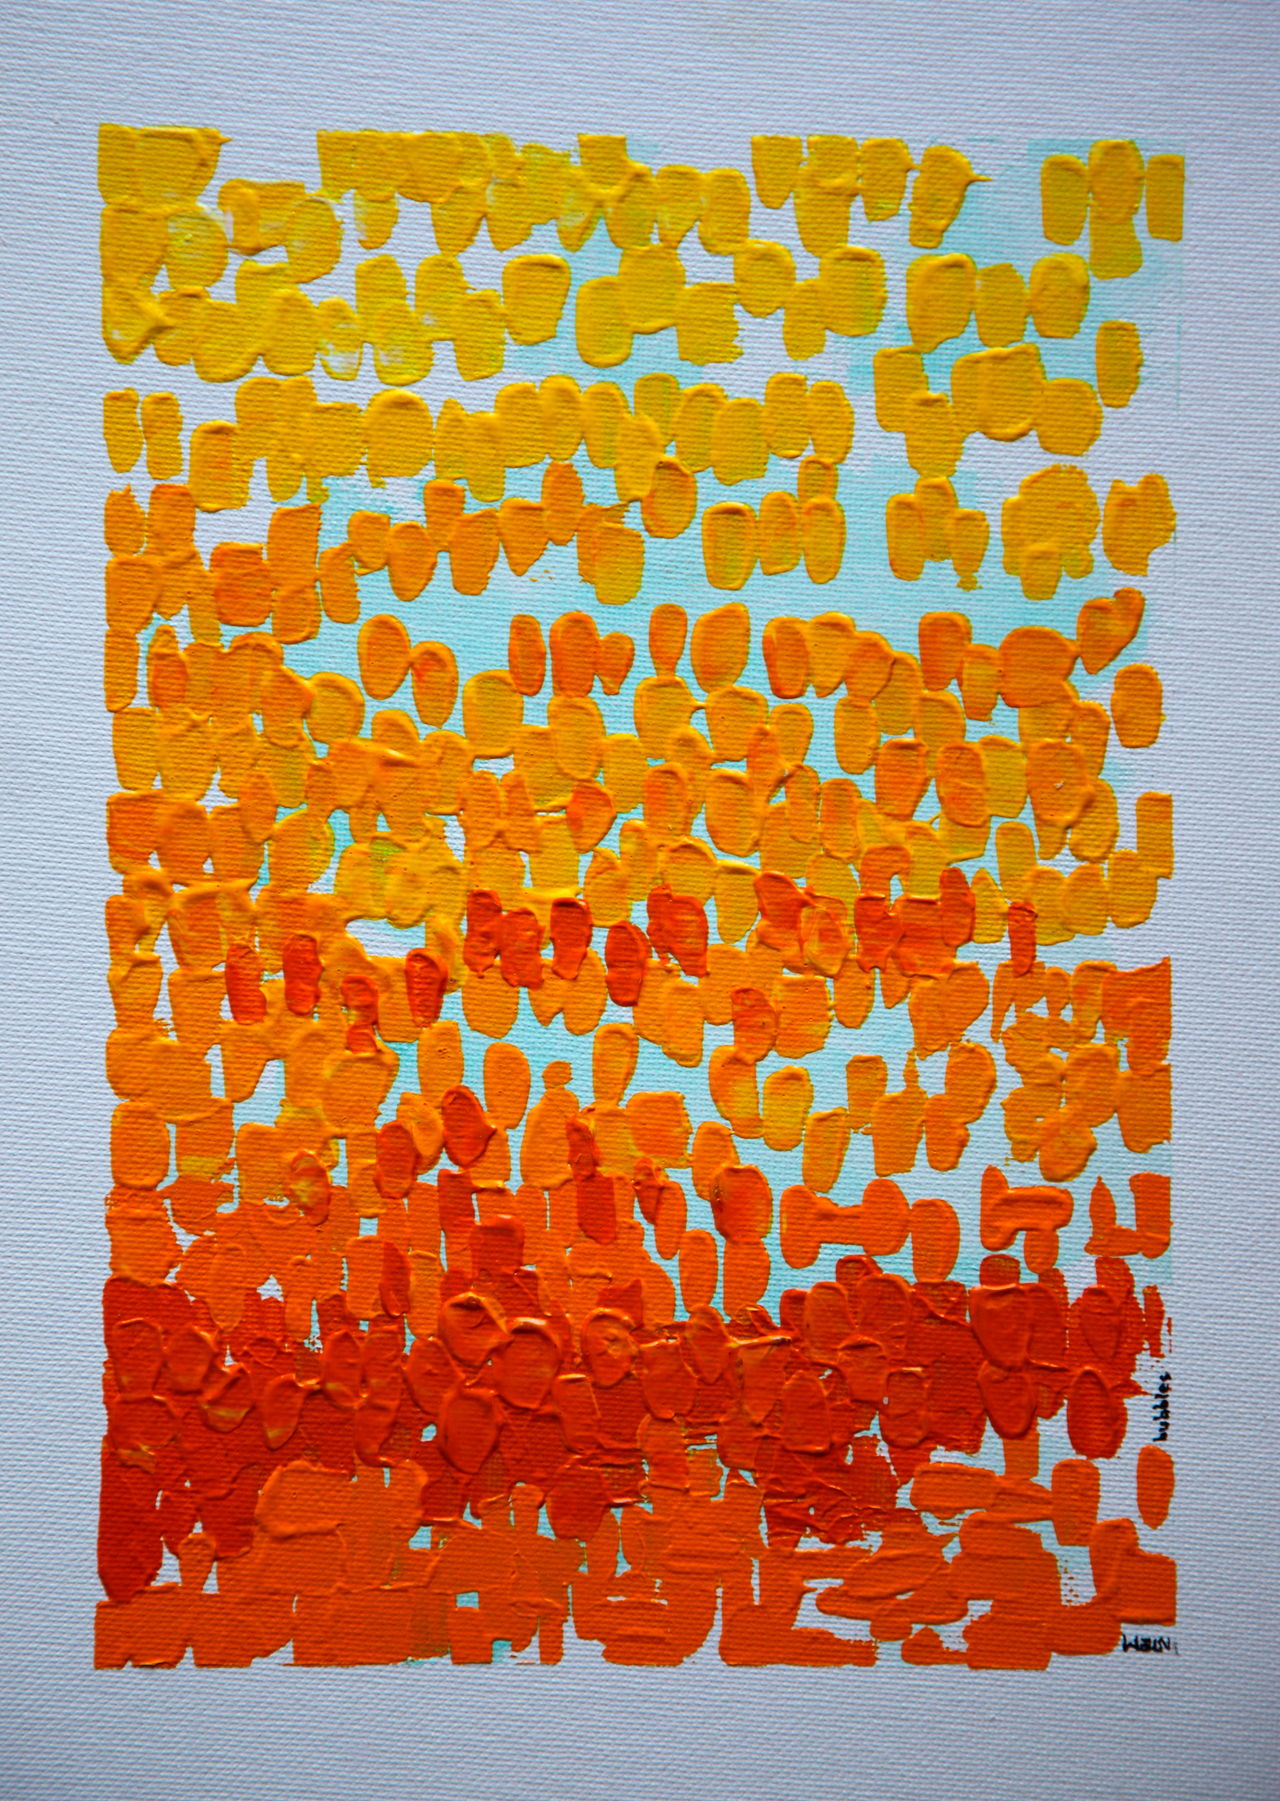 """""""Bubbles"""" acrylic on canvas board painted in April 2008 by Thomas E. McCutcheon (1949 - 2010). Acrylic Acrylic Painting Art Artist ArtWork Backgrounds Collection Creativity Design Full Frame Gallery Multi Colored No People Orange Paint Painting Pattern Red Textured  Thomas E. McCutcheon Yellow"""